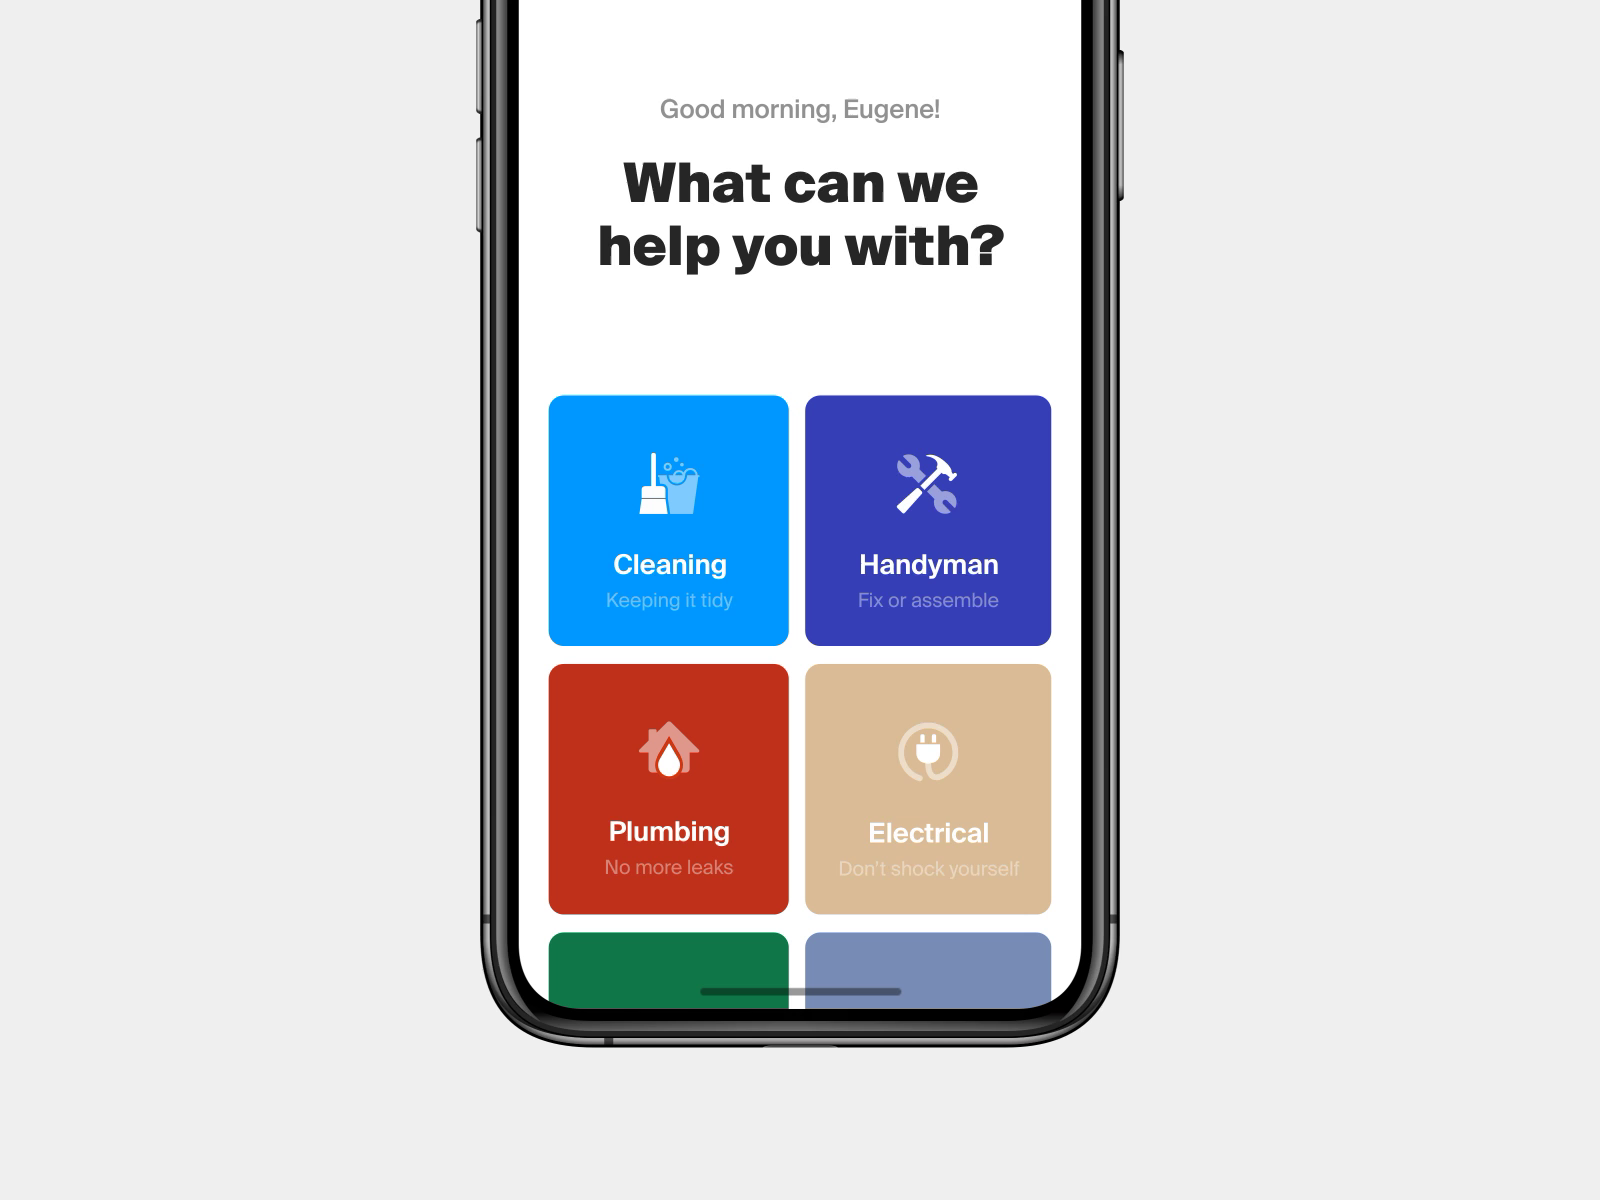 Cleaning Service App by Eugene Olefir 👊 | Animations | Cleaning